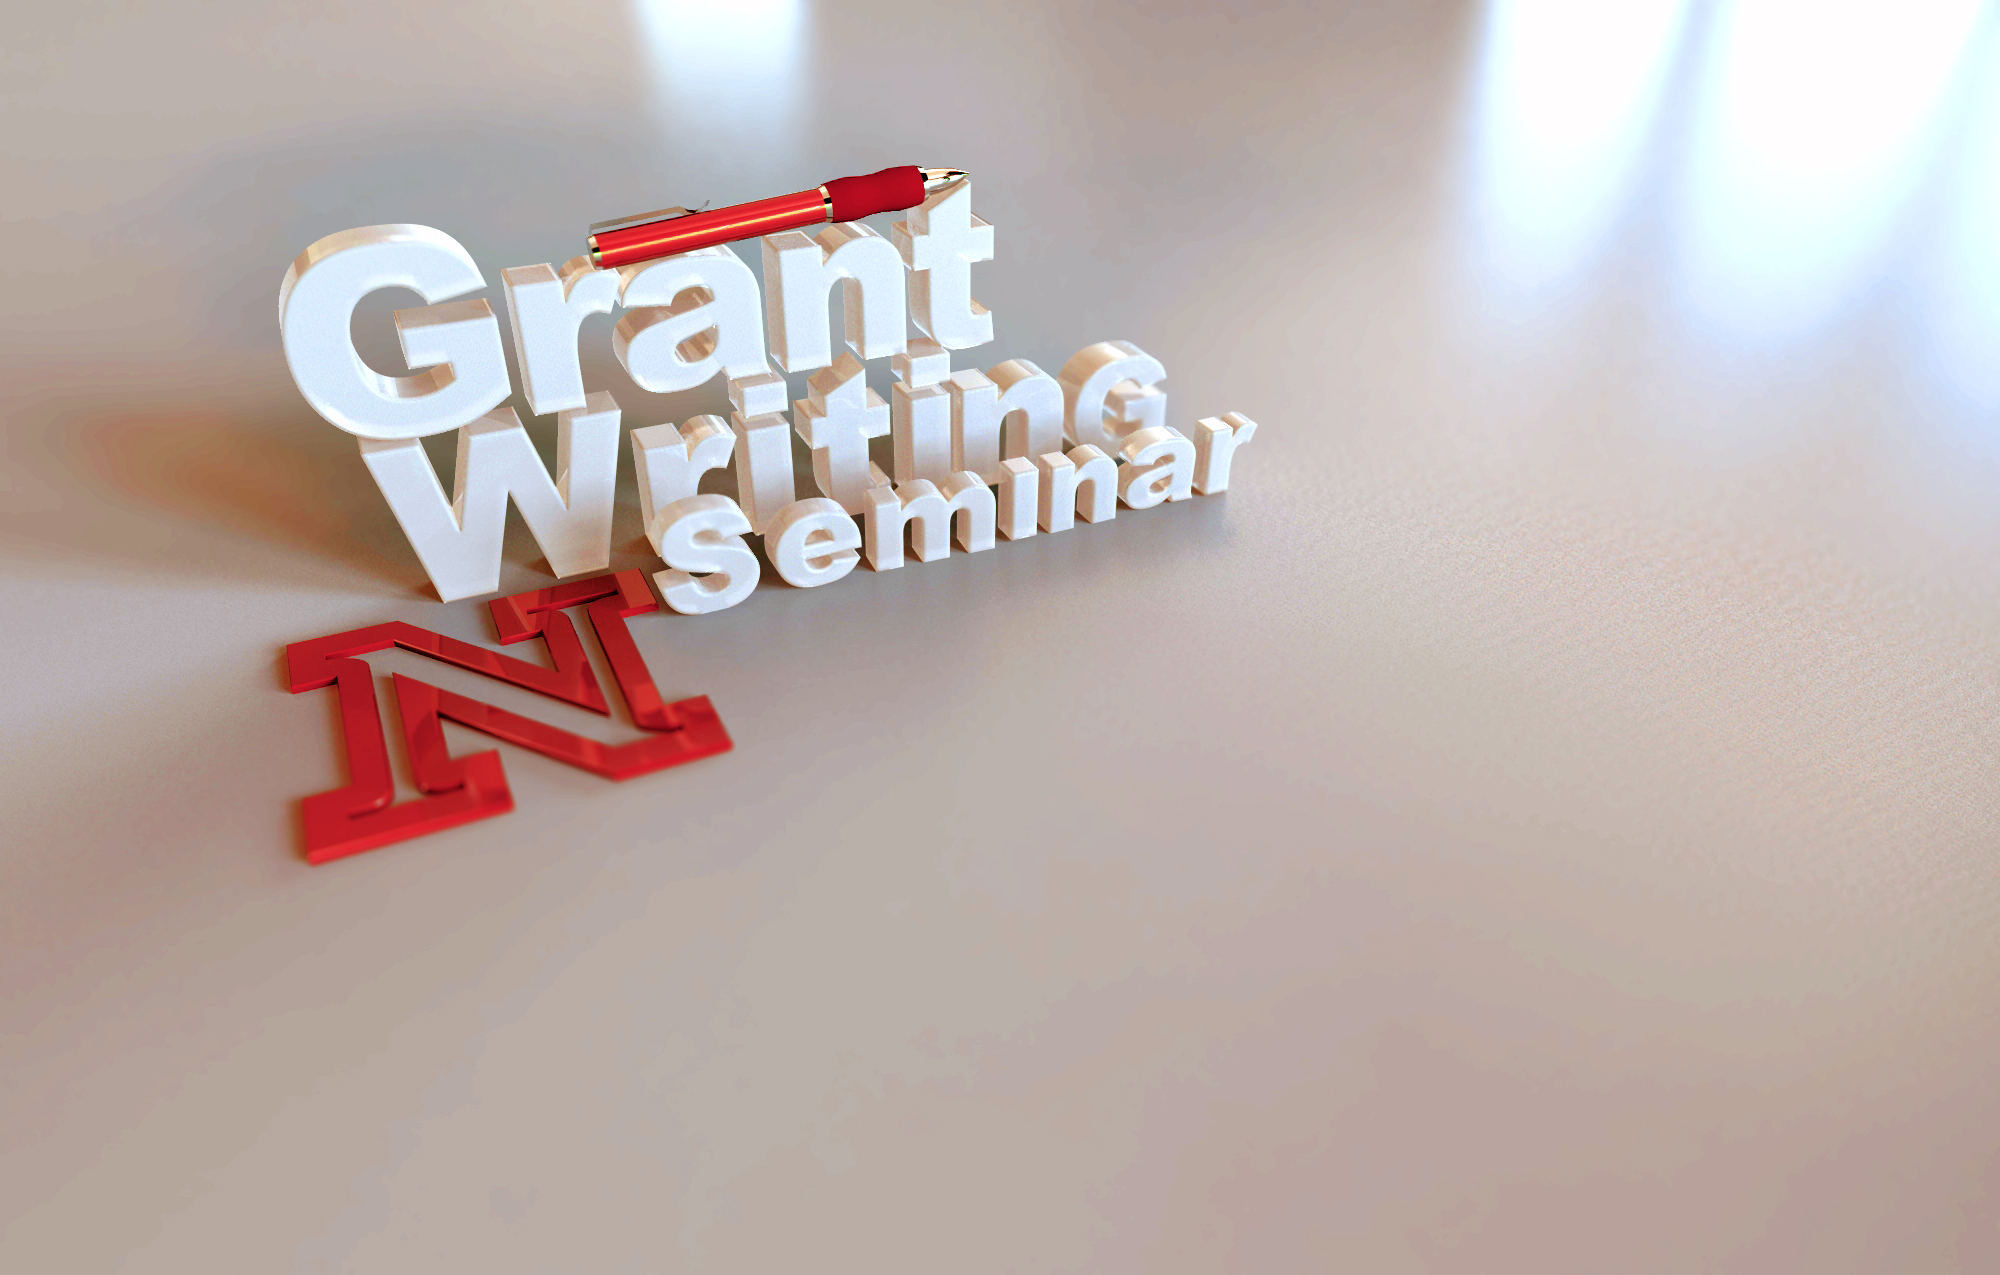 The Office of Research and Economic Development is offering a free grant writing seminar on March 16. Advanced registration is required.